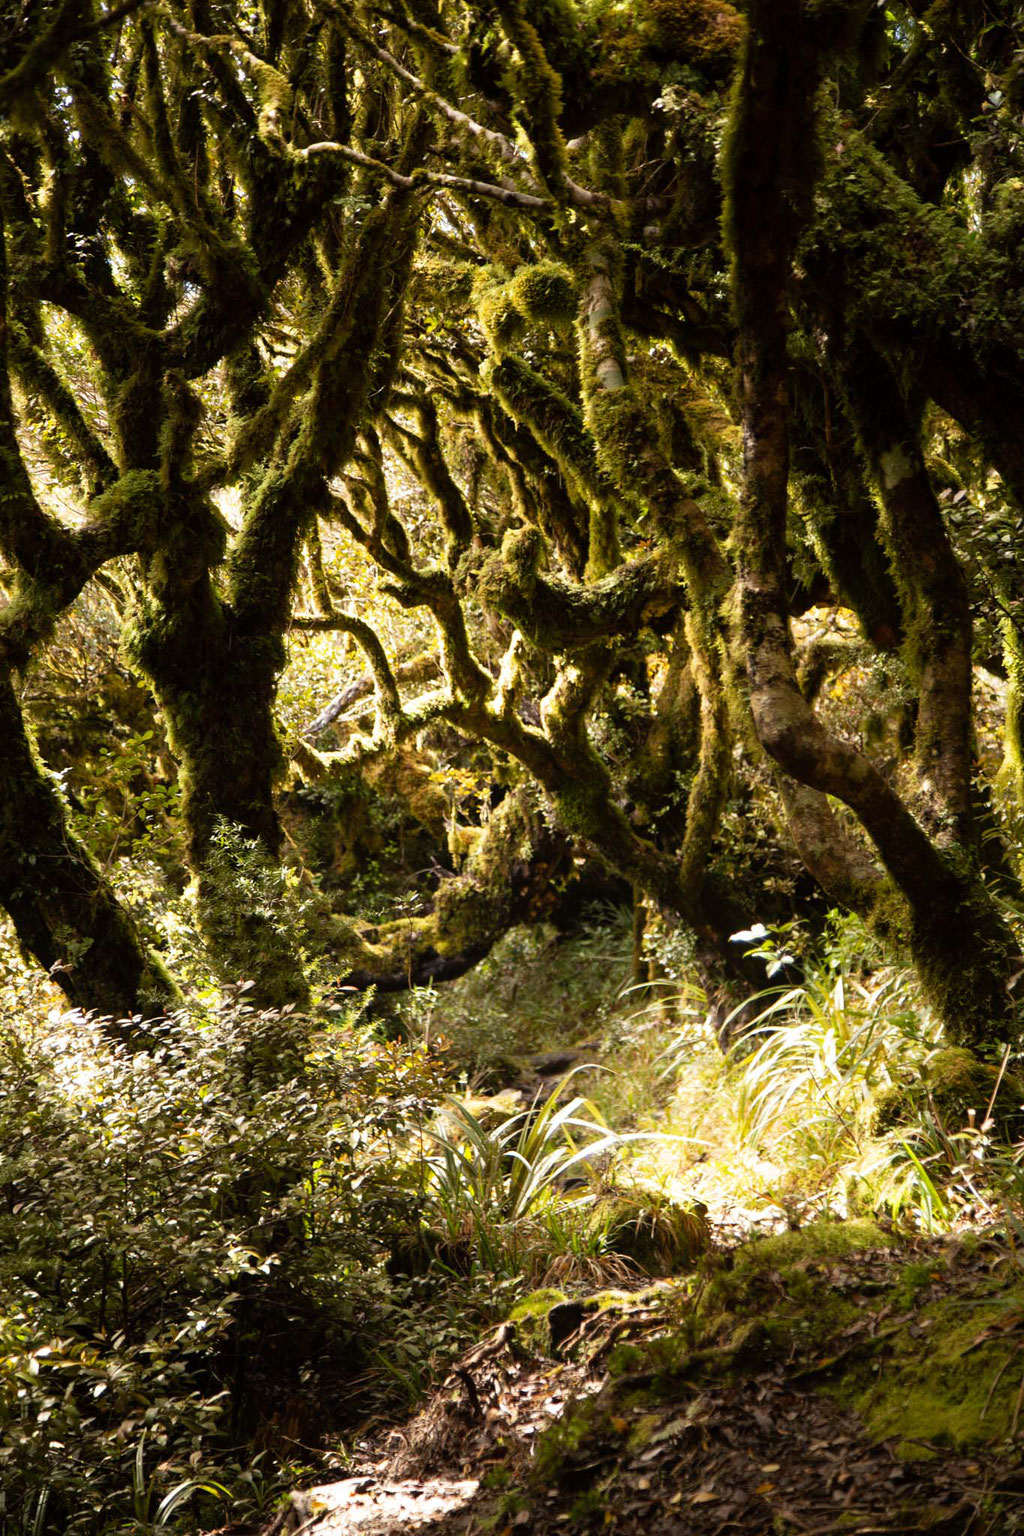 The goblin forest - Mount Egmont National Park